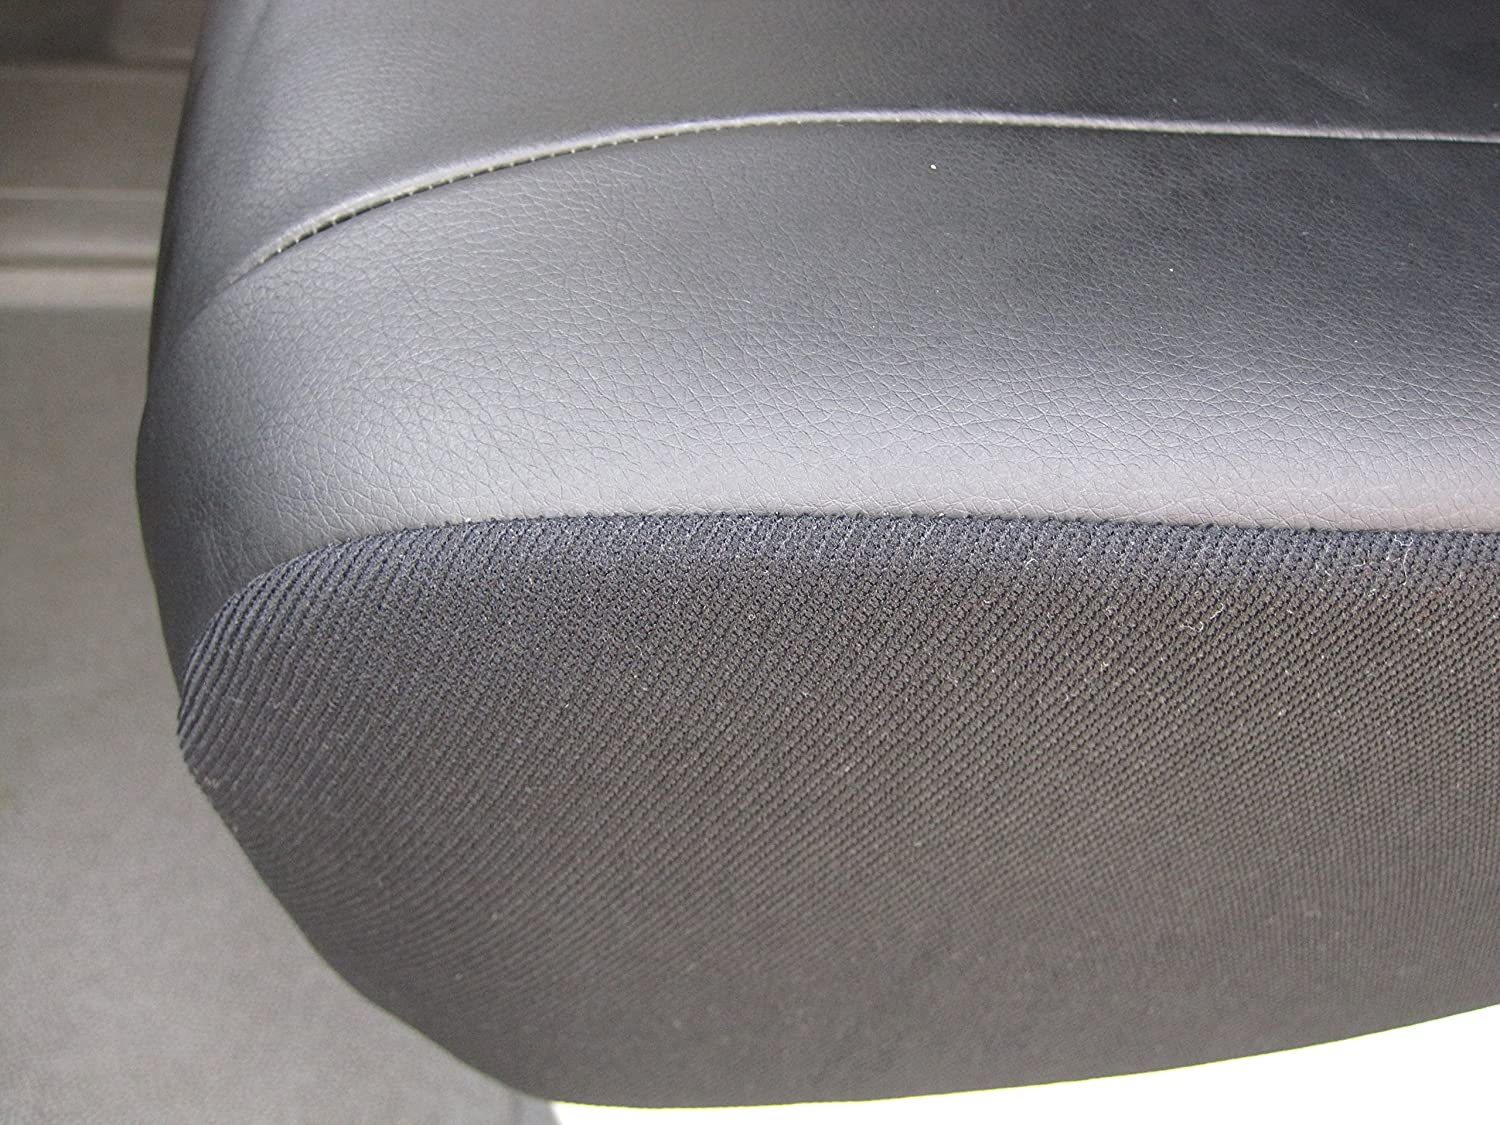 with Fold Down Table DKMOTO DK703B Tailored Van Seat Covers for Ford Transit Custom Leatherette